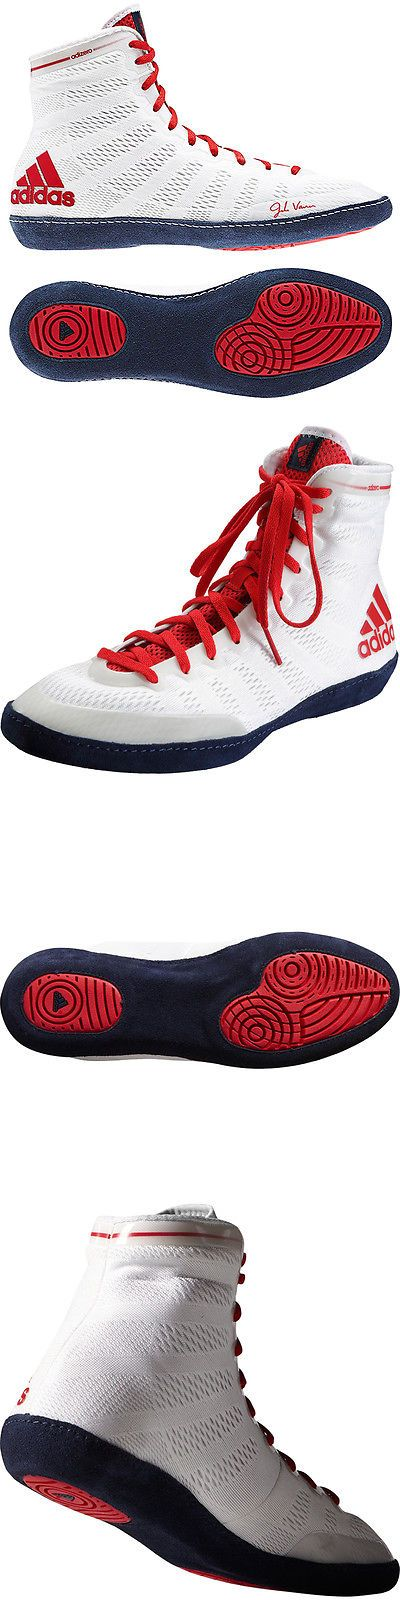 Footwear 79799: Adidas Adizero Varner High Top Wrestling Shoes - White Navy Red -> BUY IT NOW ONLY: $120 on eBay!